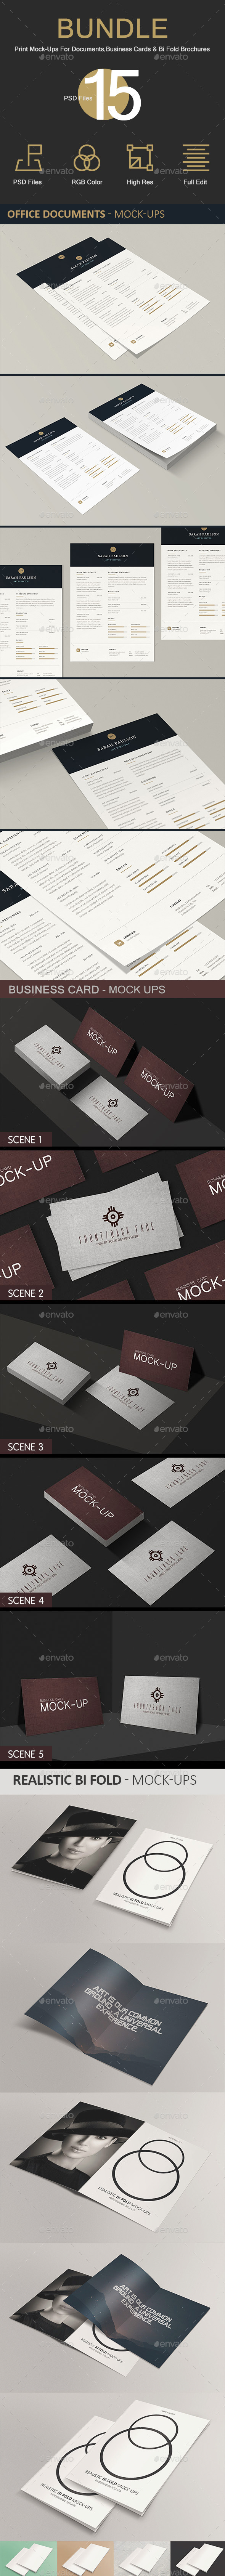 GraphicRiver Print Bundle Mock-Ups 20491920